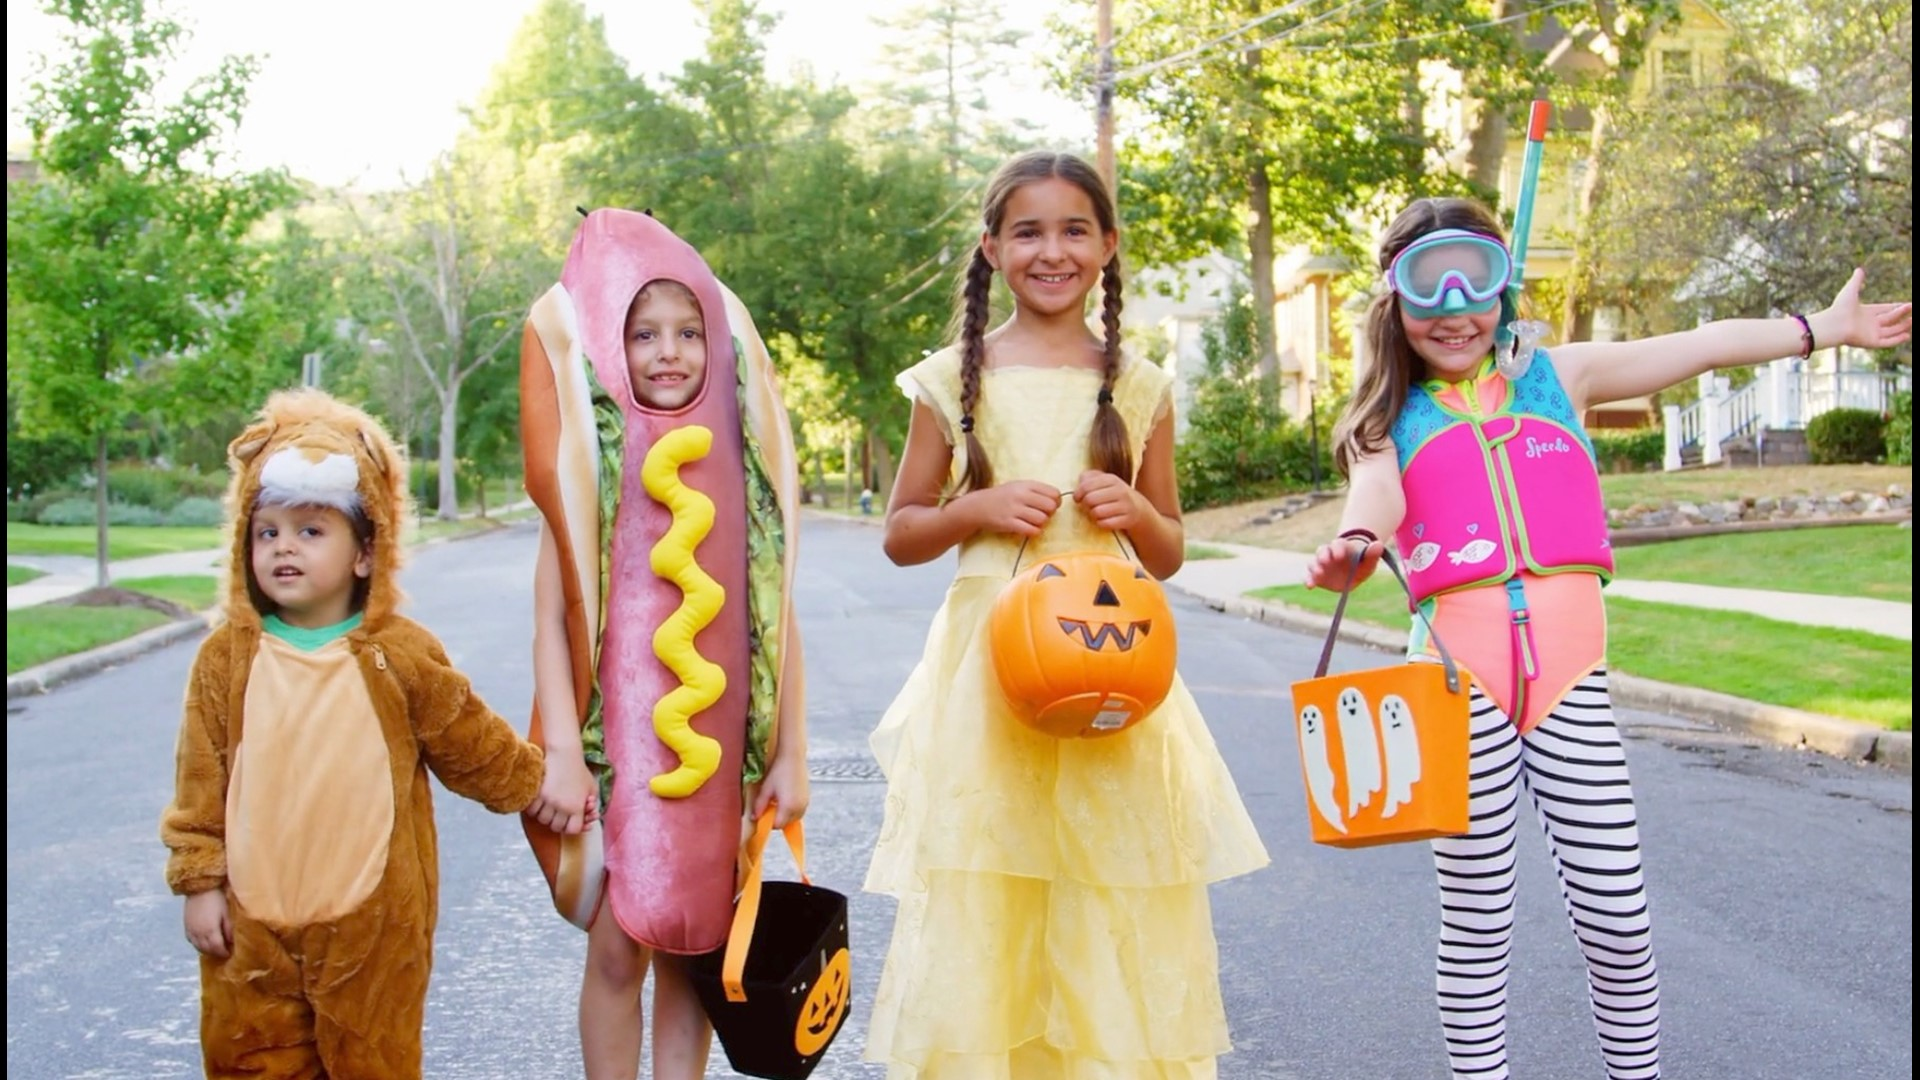 Atlanta Weather Halloween 2020 Halloween 2020 is Not Canceled! Here Are Some Fun Ways to Do the